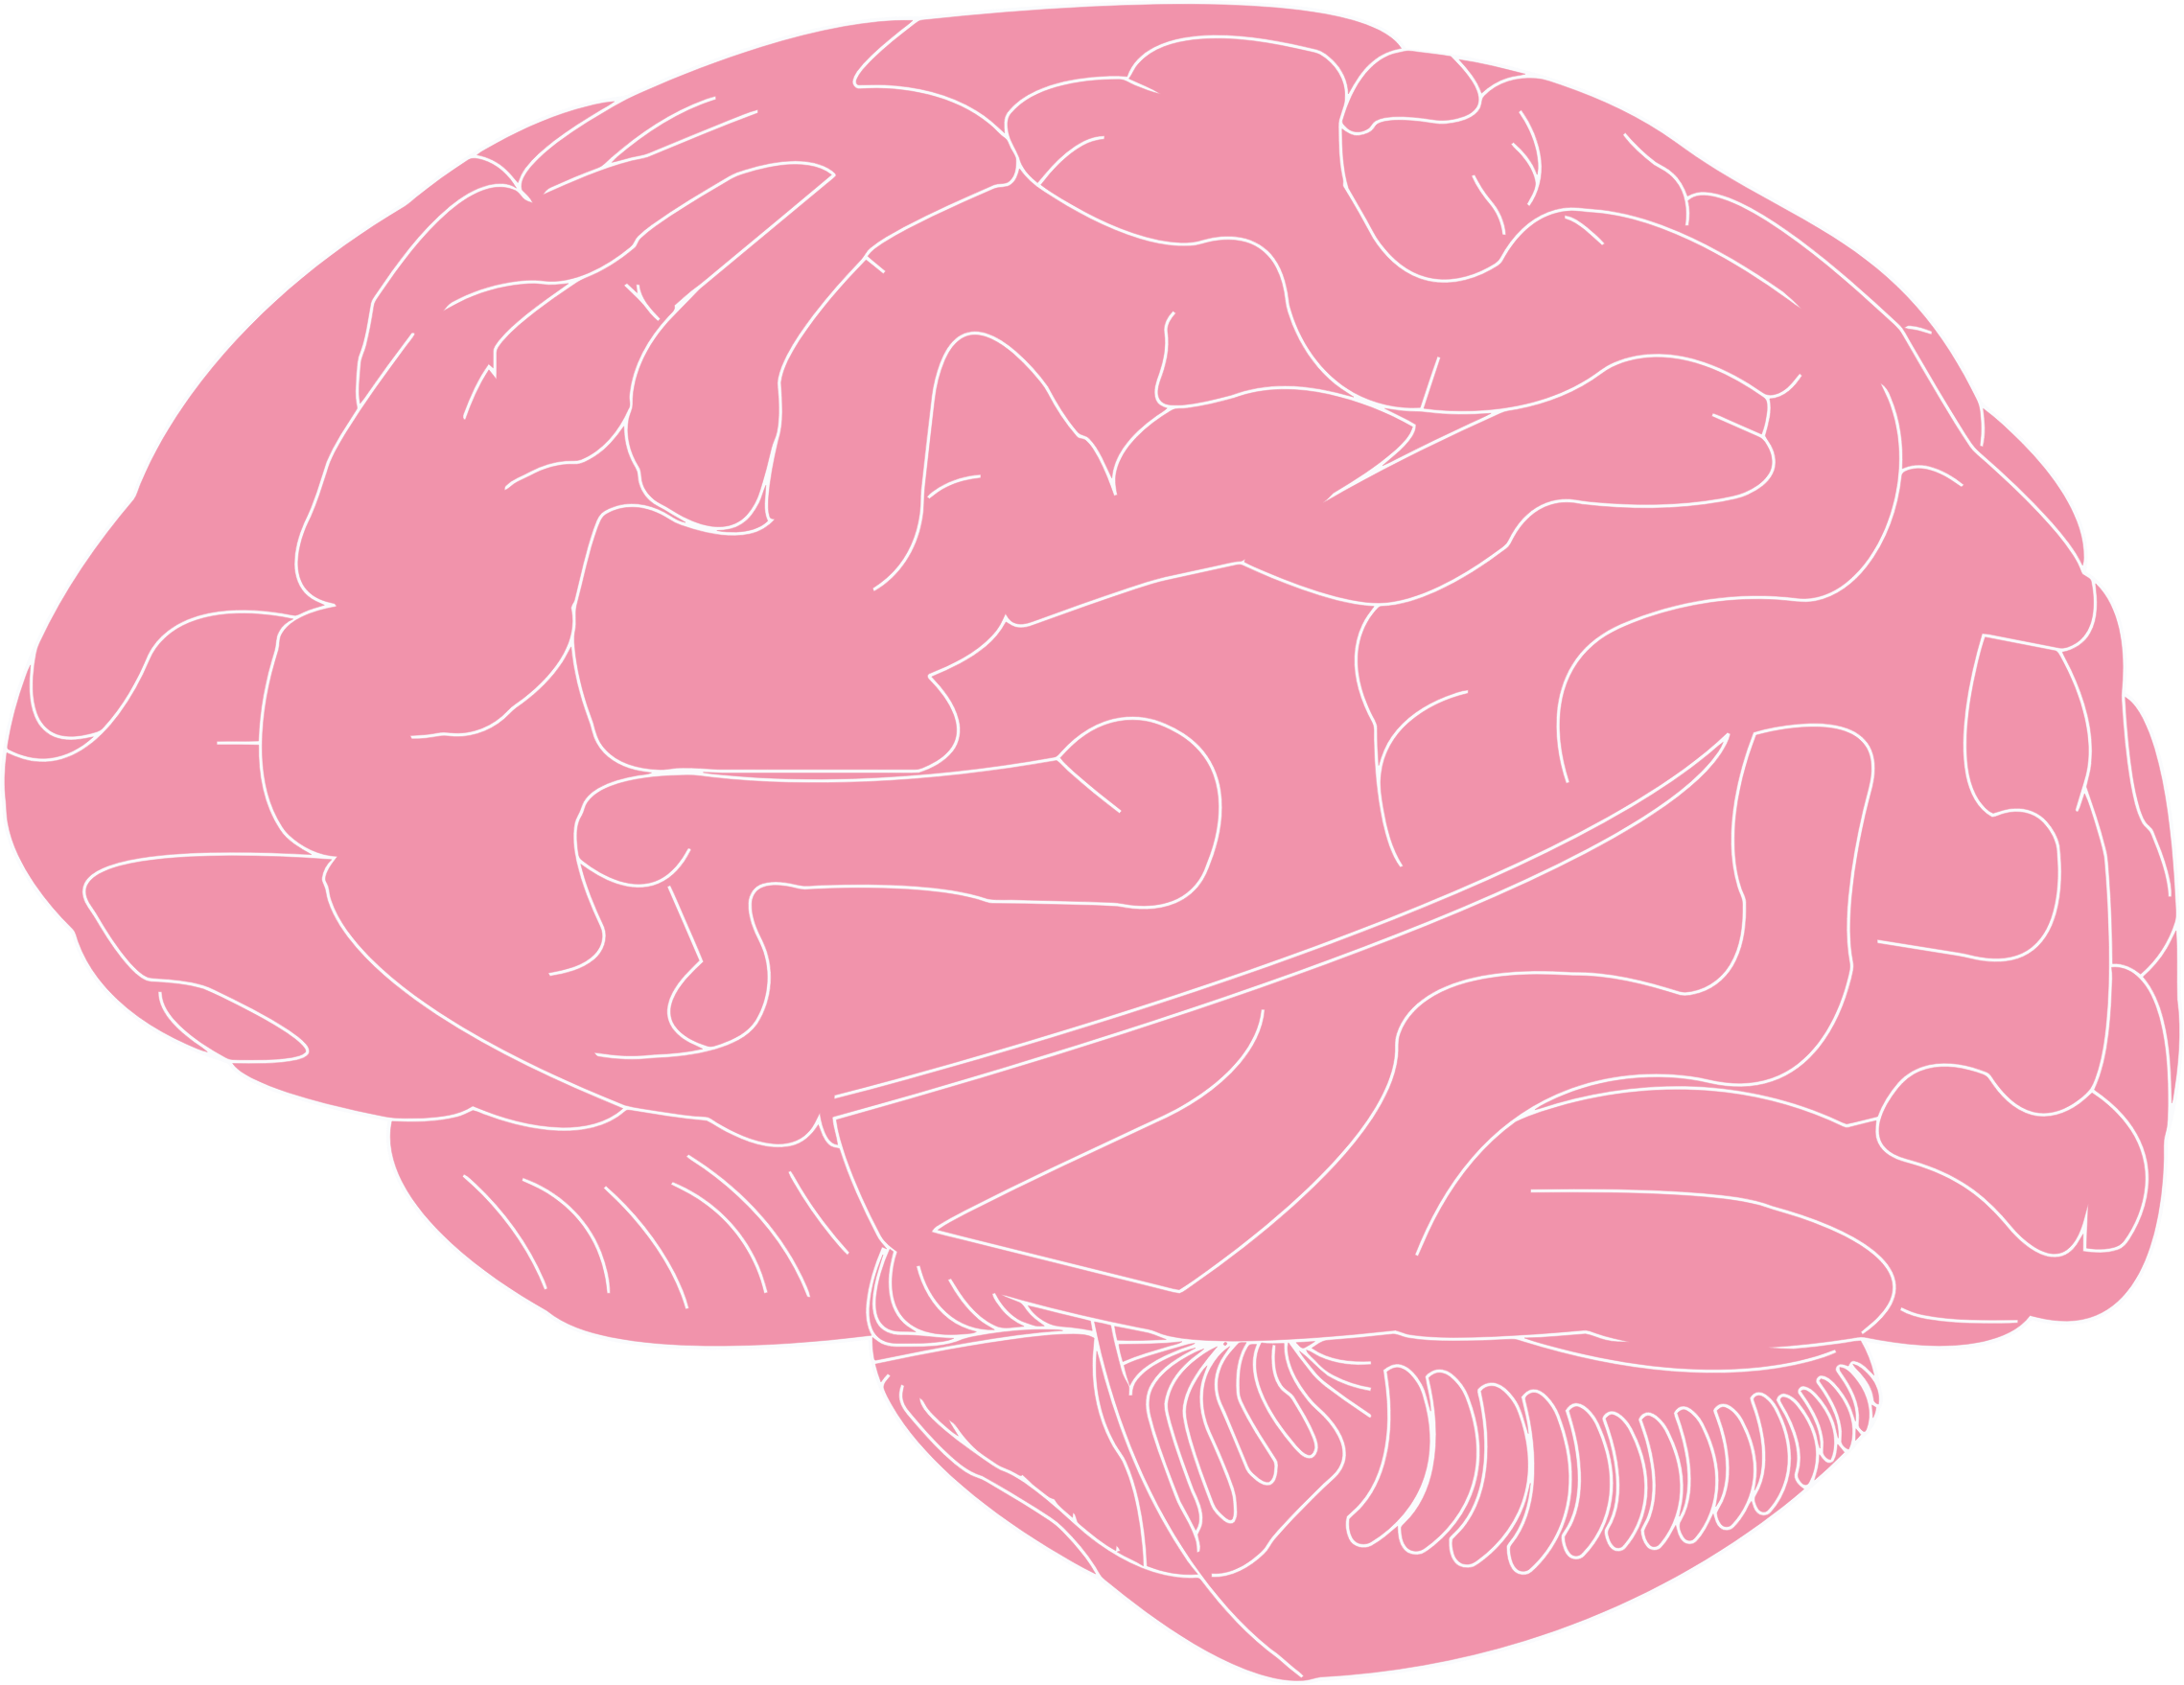 Brain Illustration by GDJ